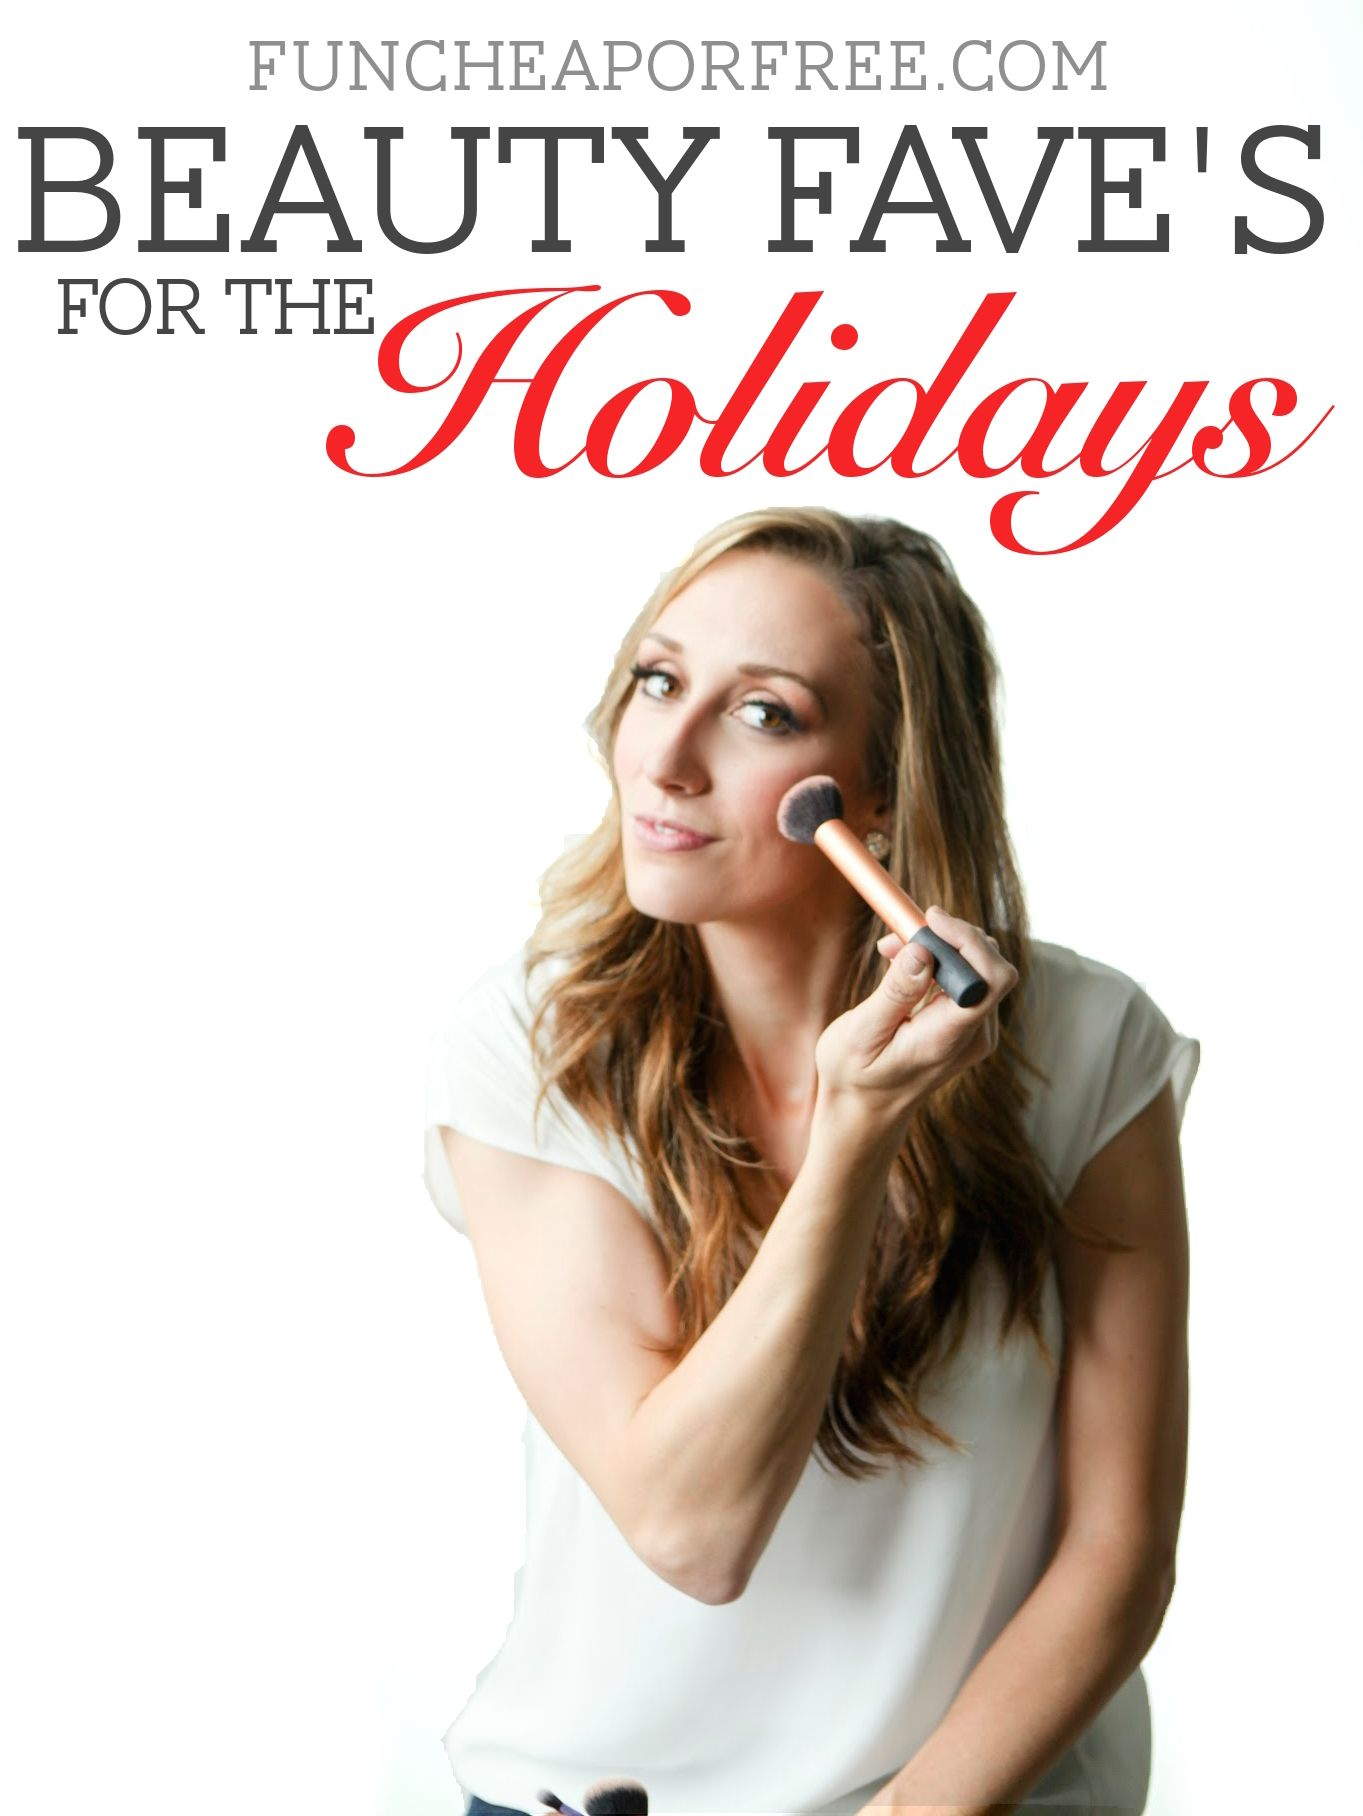 Beauty Faves for the Holidays! #FindYourHealthy FunCheapOrFree.com